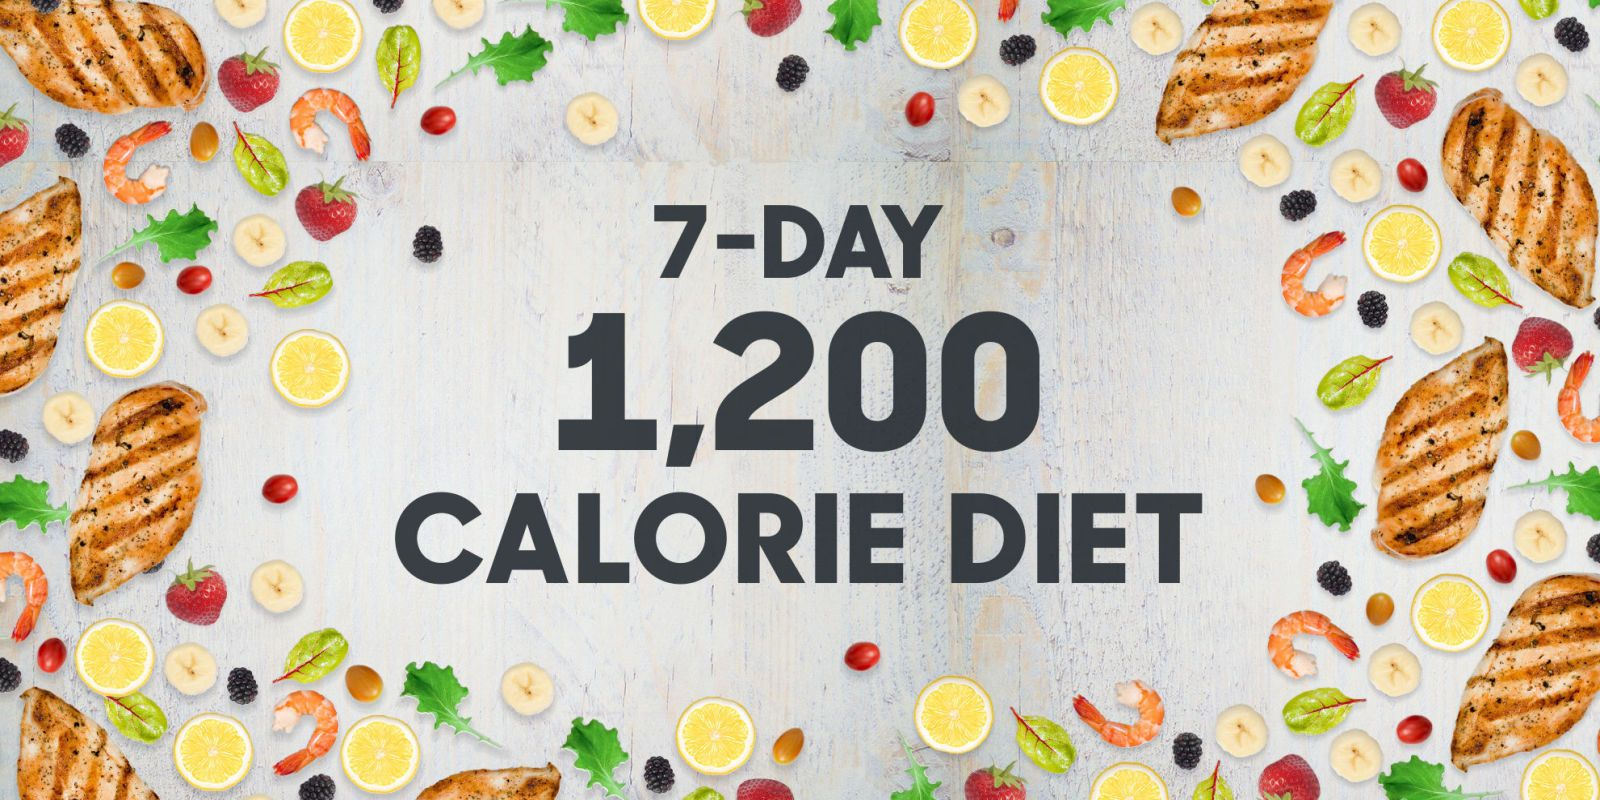 Calorie diet also menu day lose pounds weight loss meal plan rh goodhousekeeping